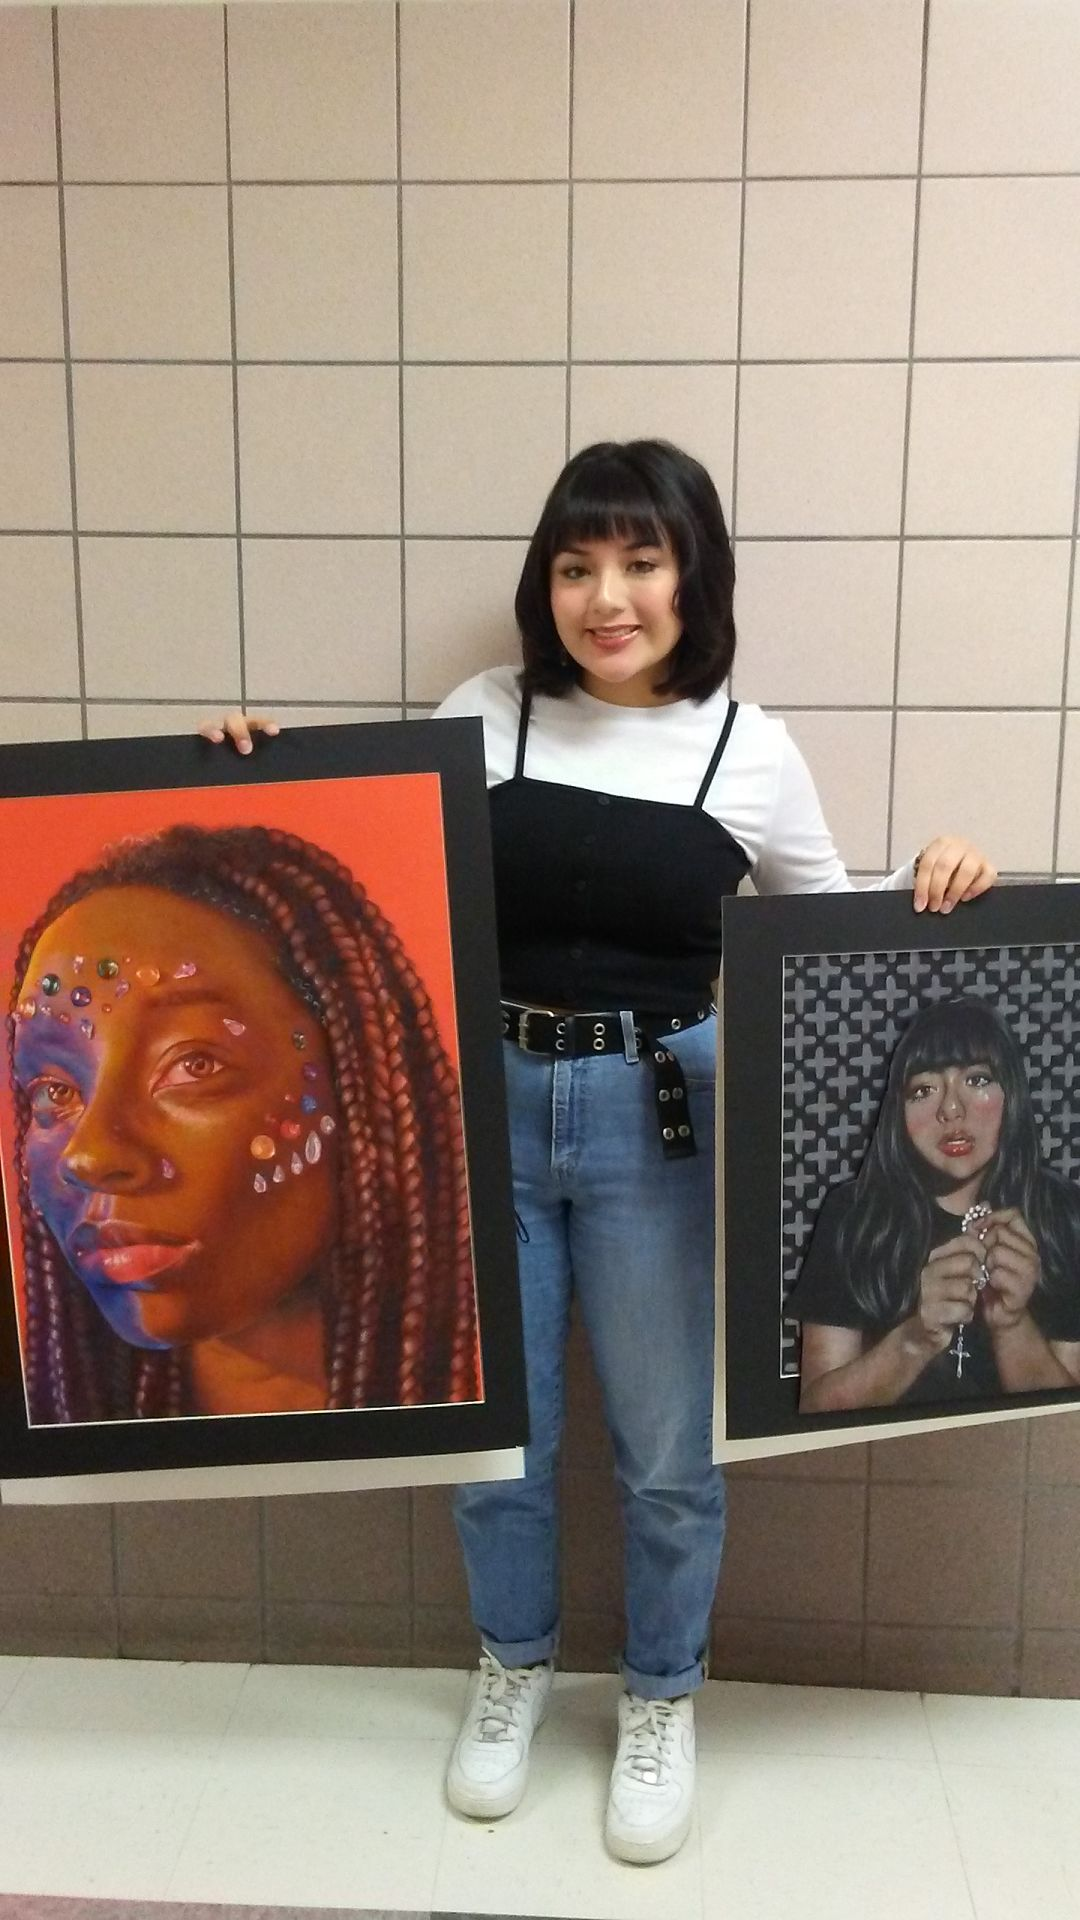 Rowlett High School sends 47 artworks to state